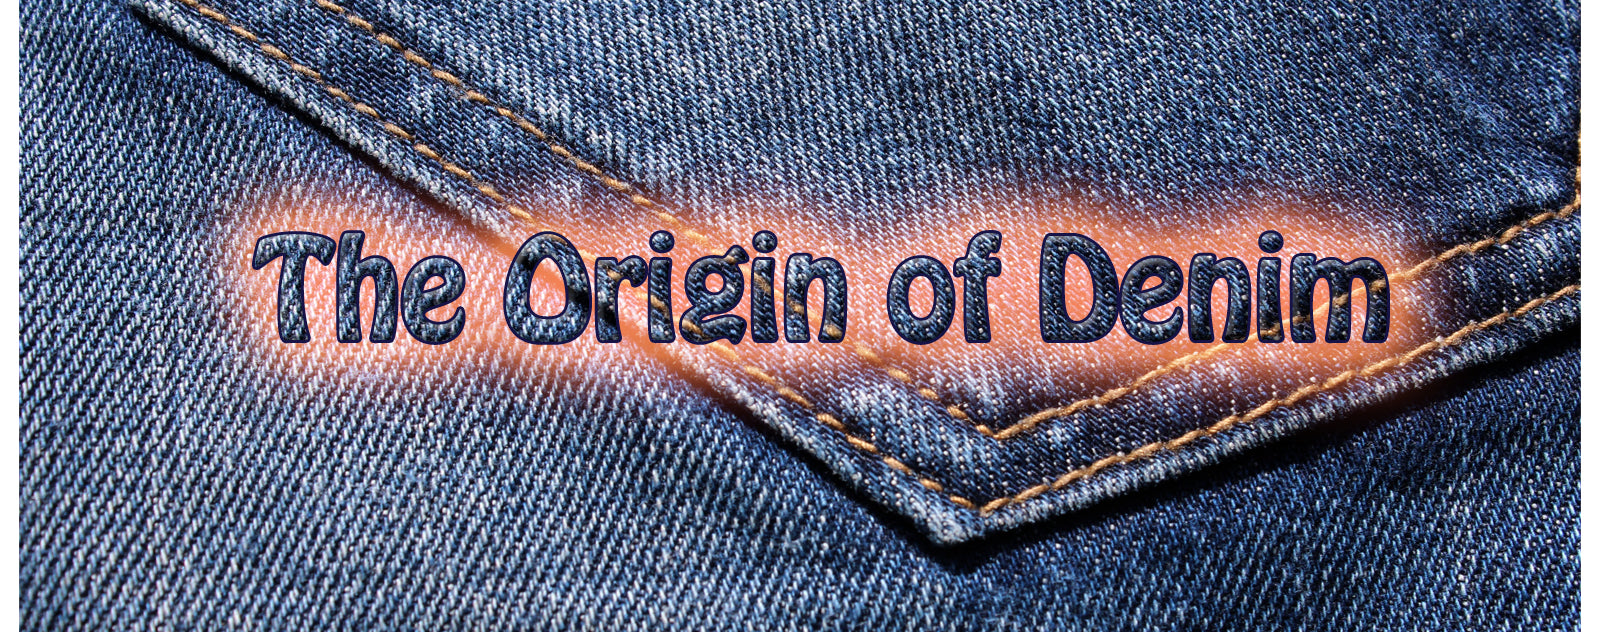 The Origin of Denim